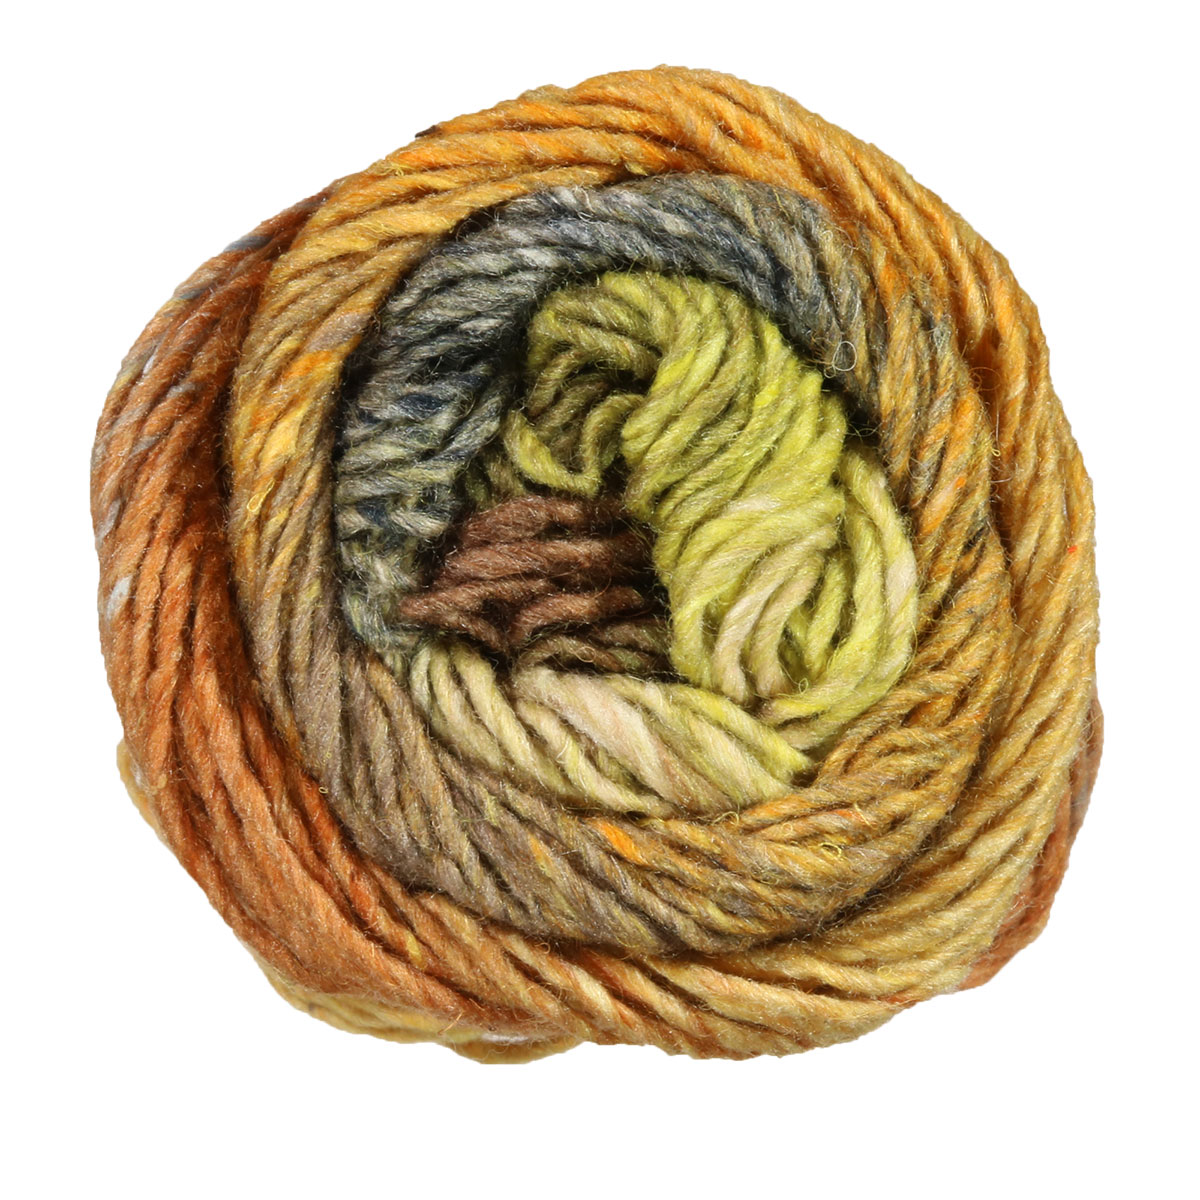 Noro Silk Garden Yarn - 467 Persimmon at Jimmy Beans Wool